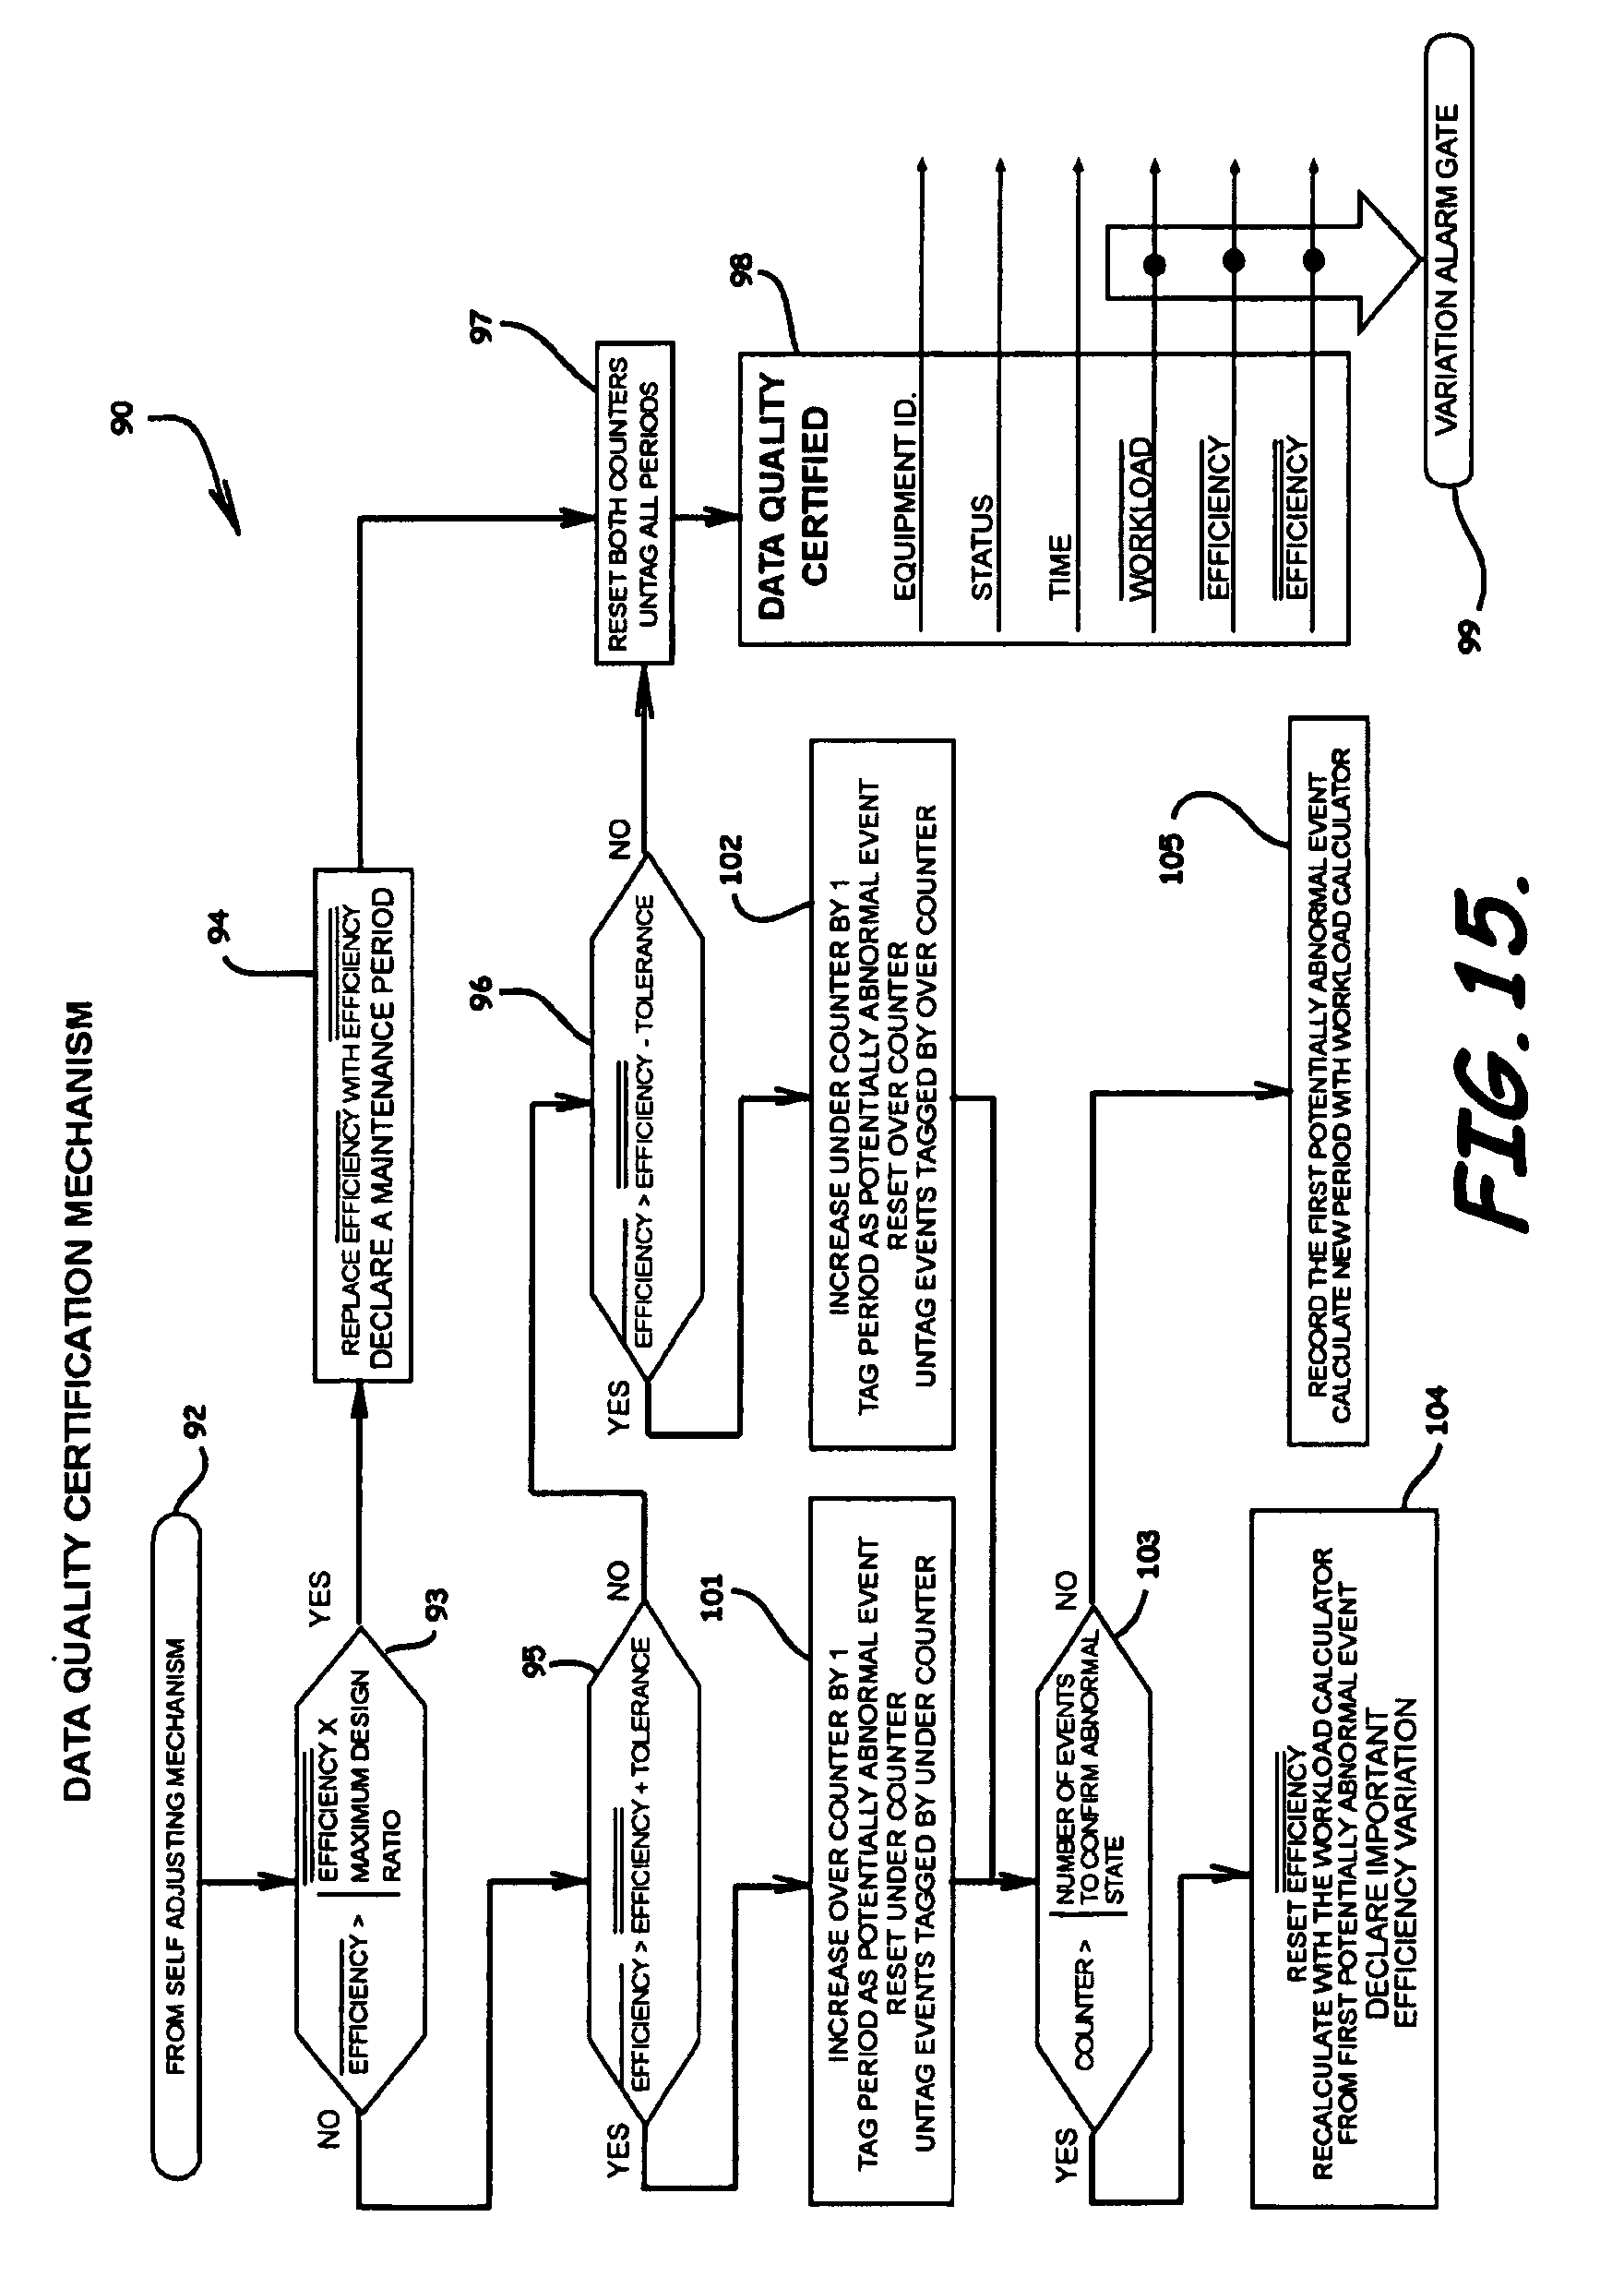 US6990431 additionally B003MZYE8O likewise US6990431 further Search as well About. on datacenter equipment